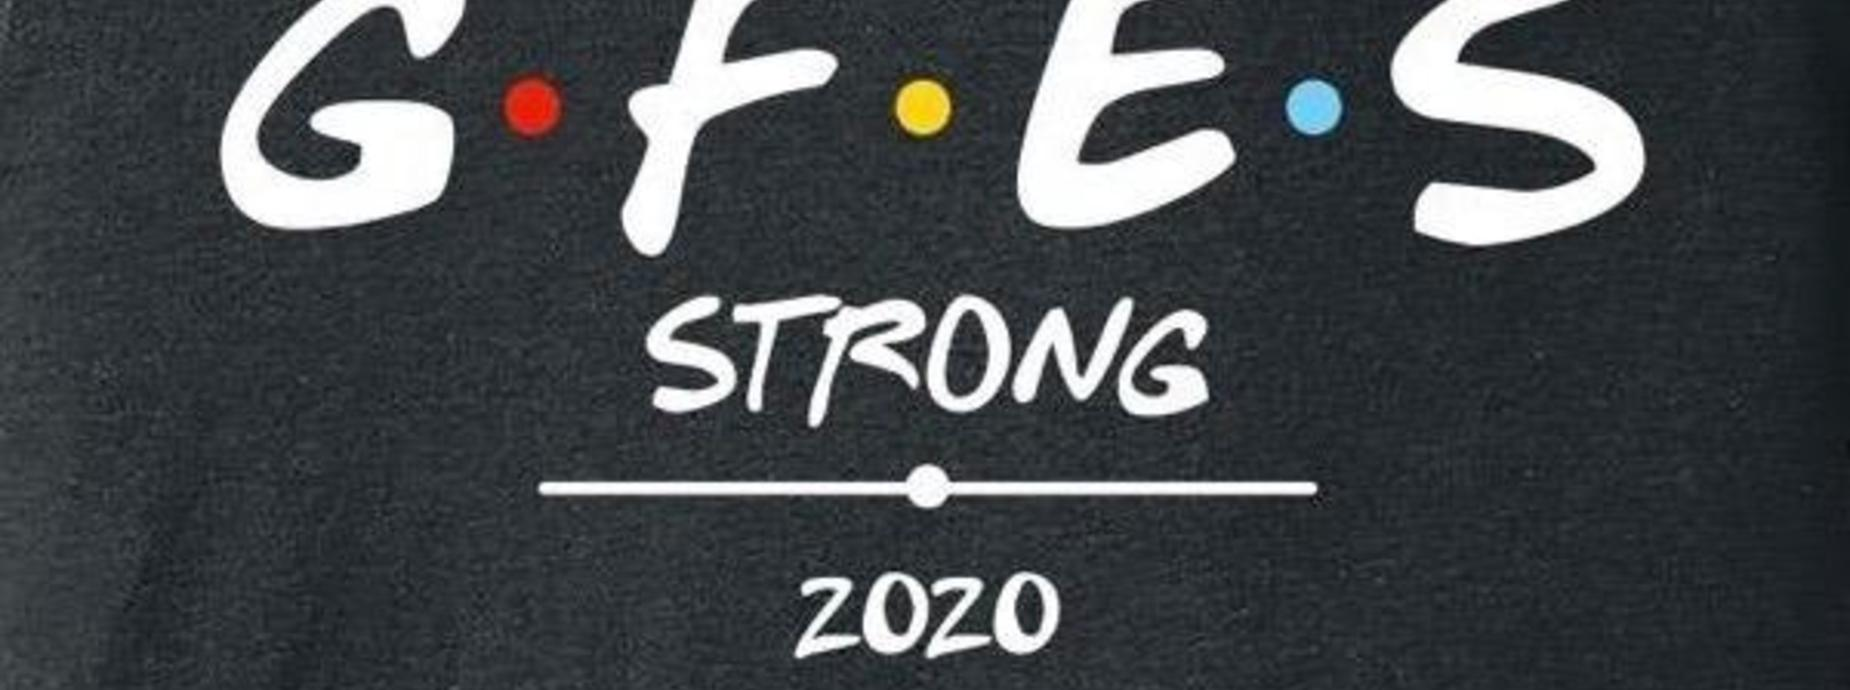 GFES Strong